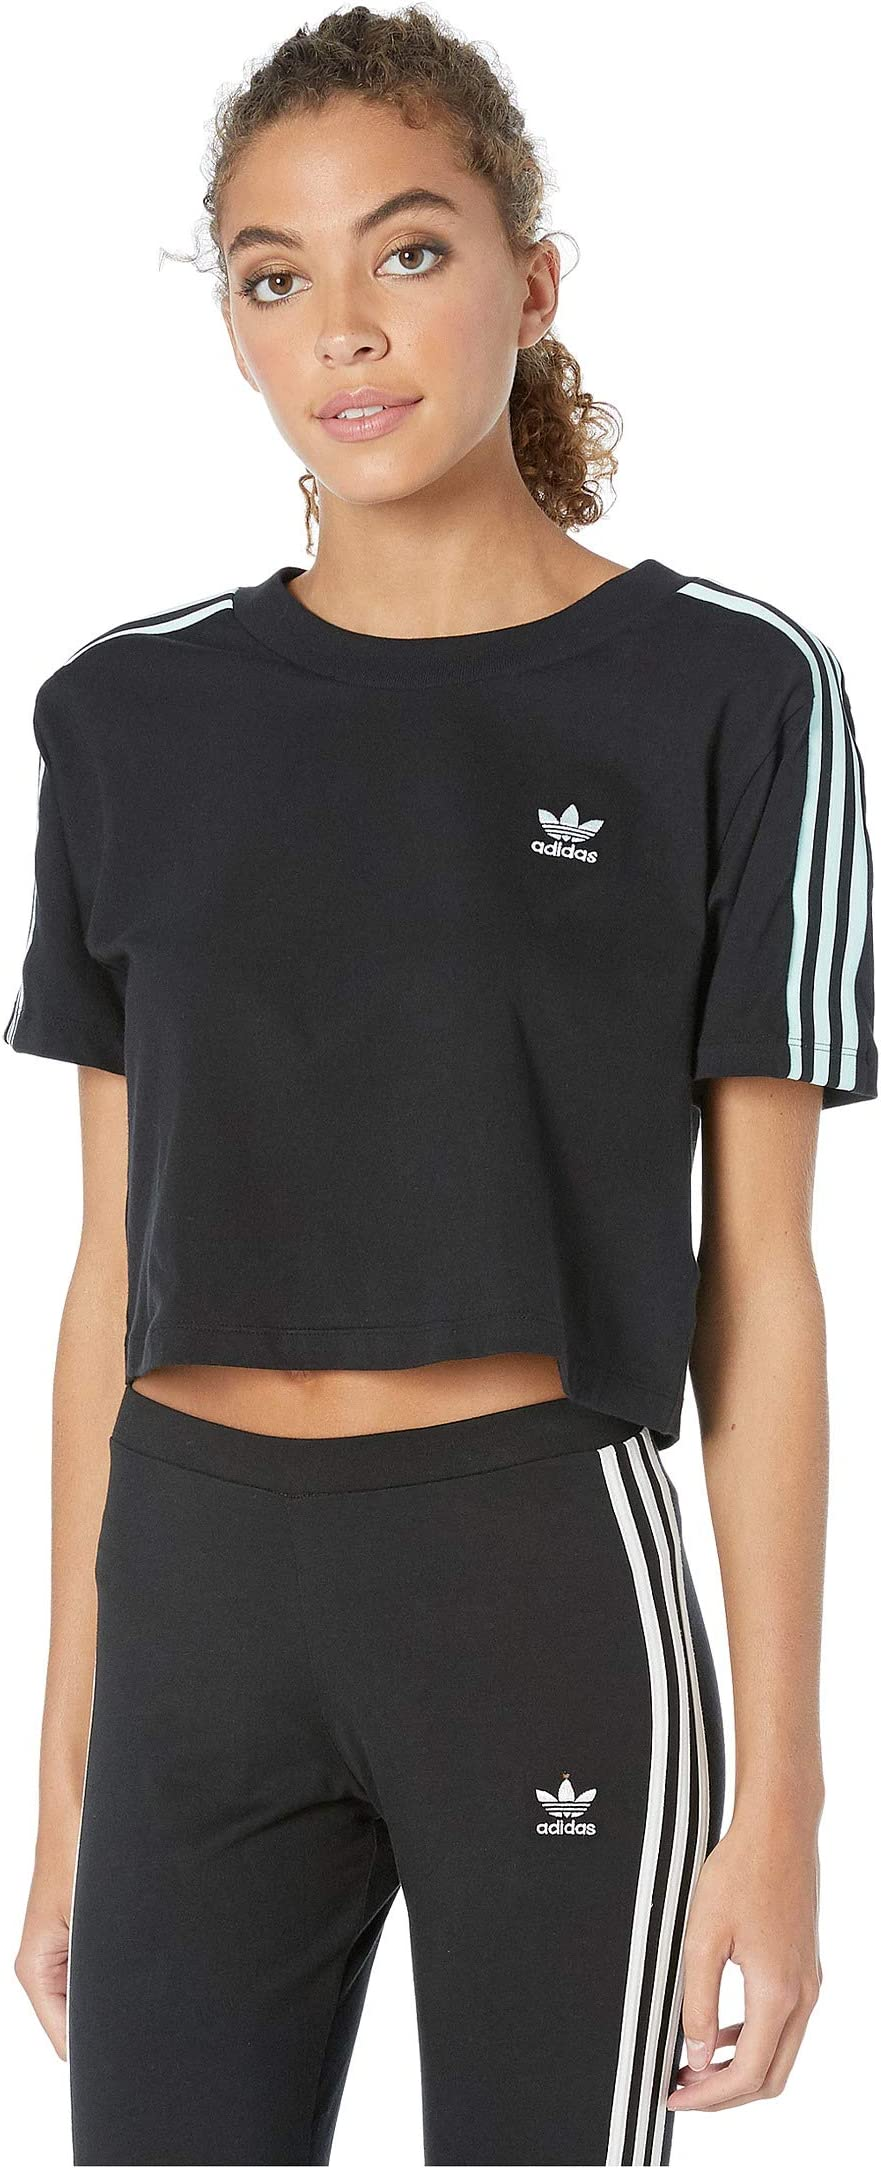 retro adidas t shirt women& 39